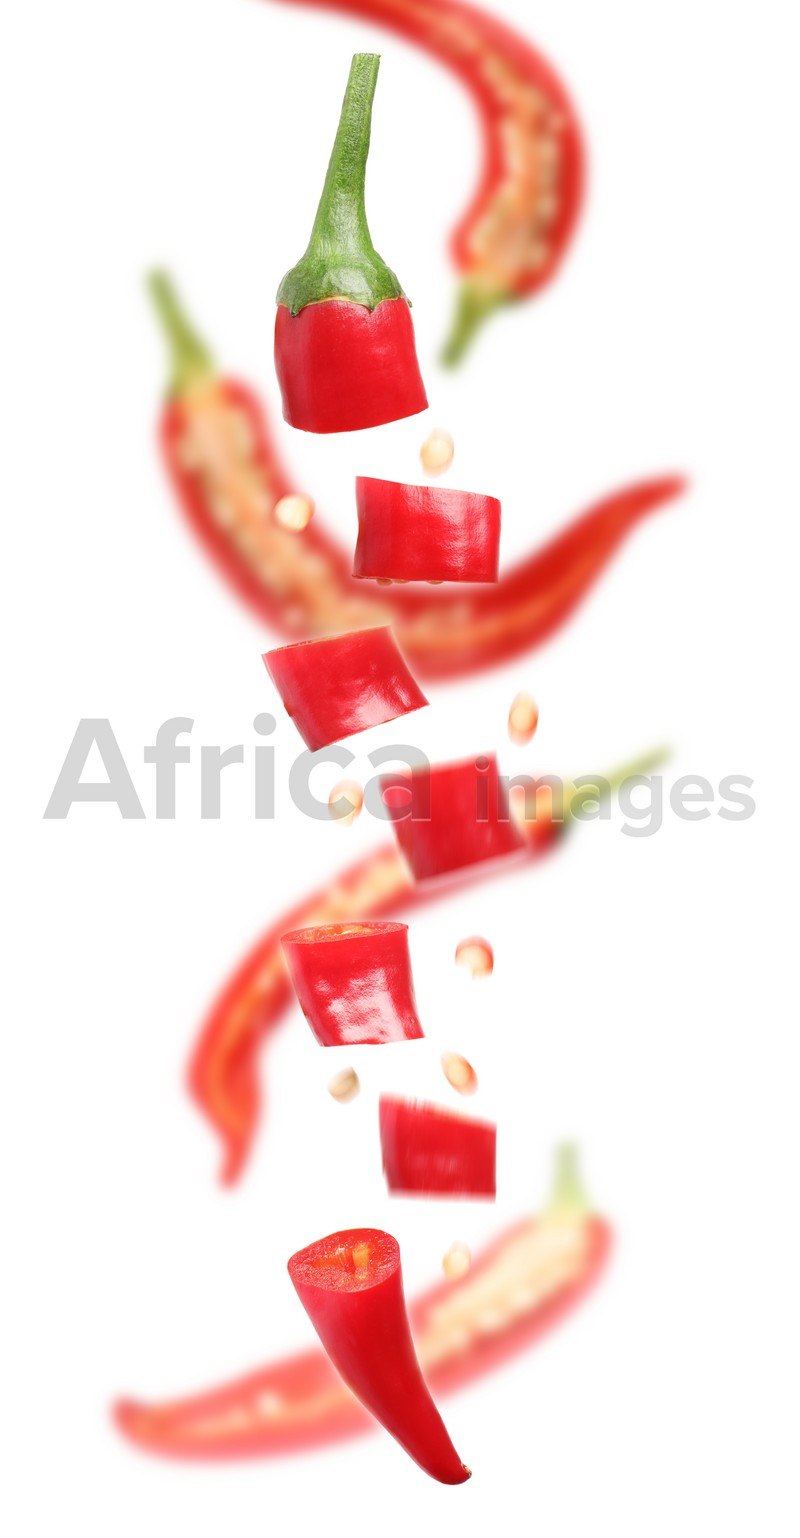 Pieces of ripe red chili peppers falling on white background. Vertical banner design